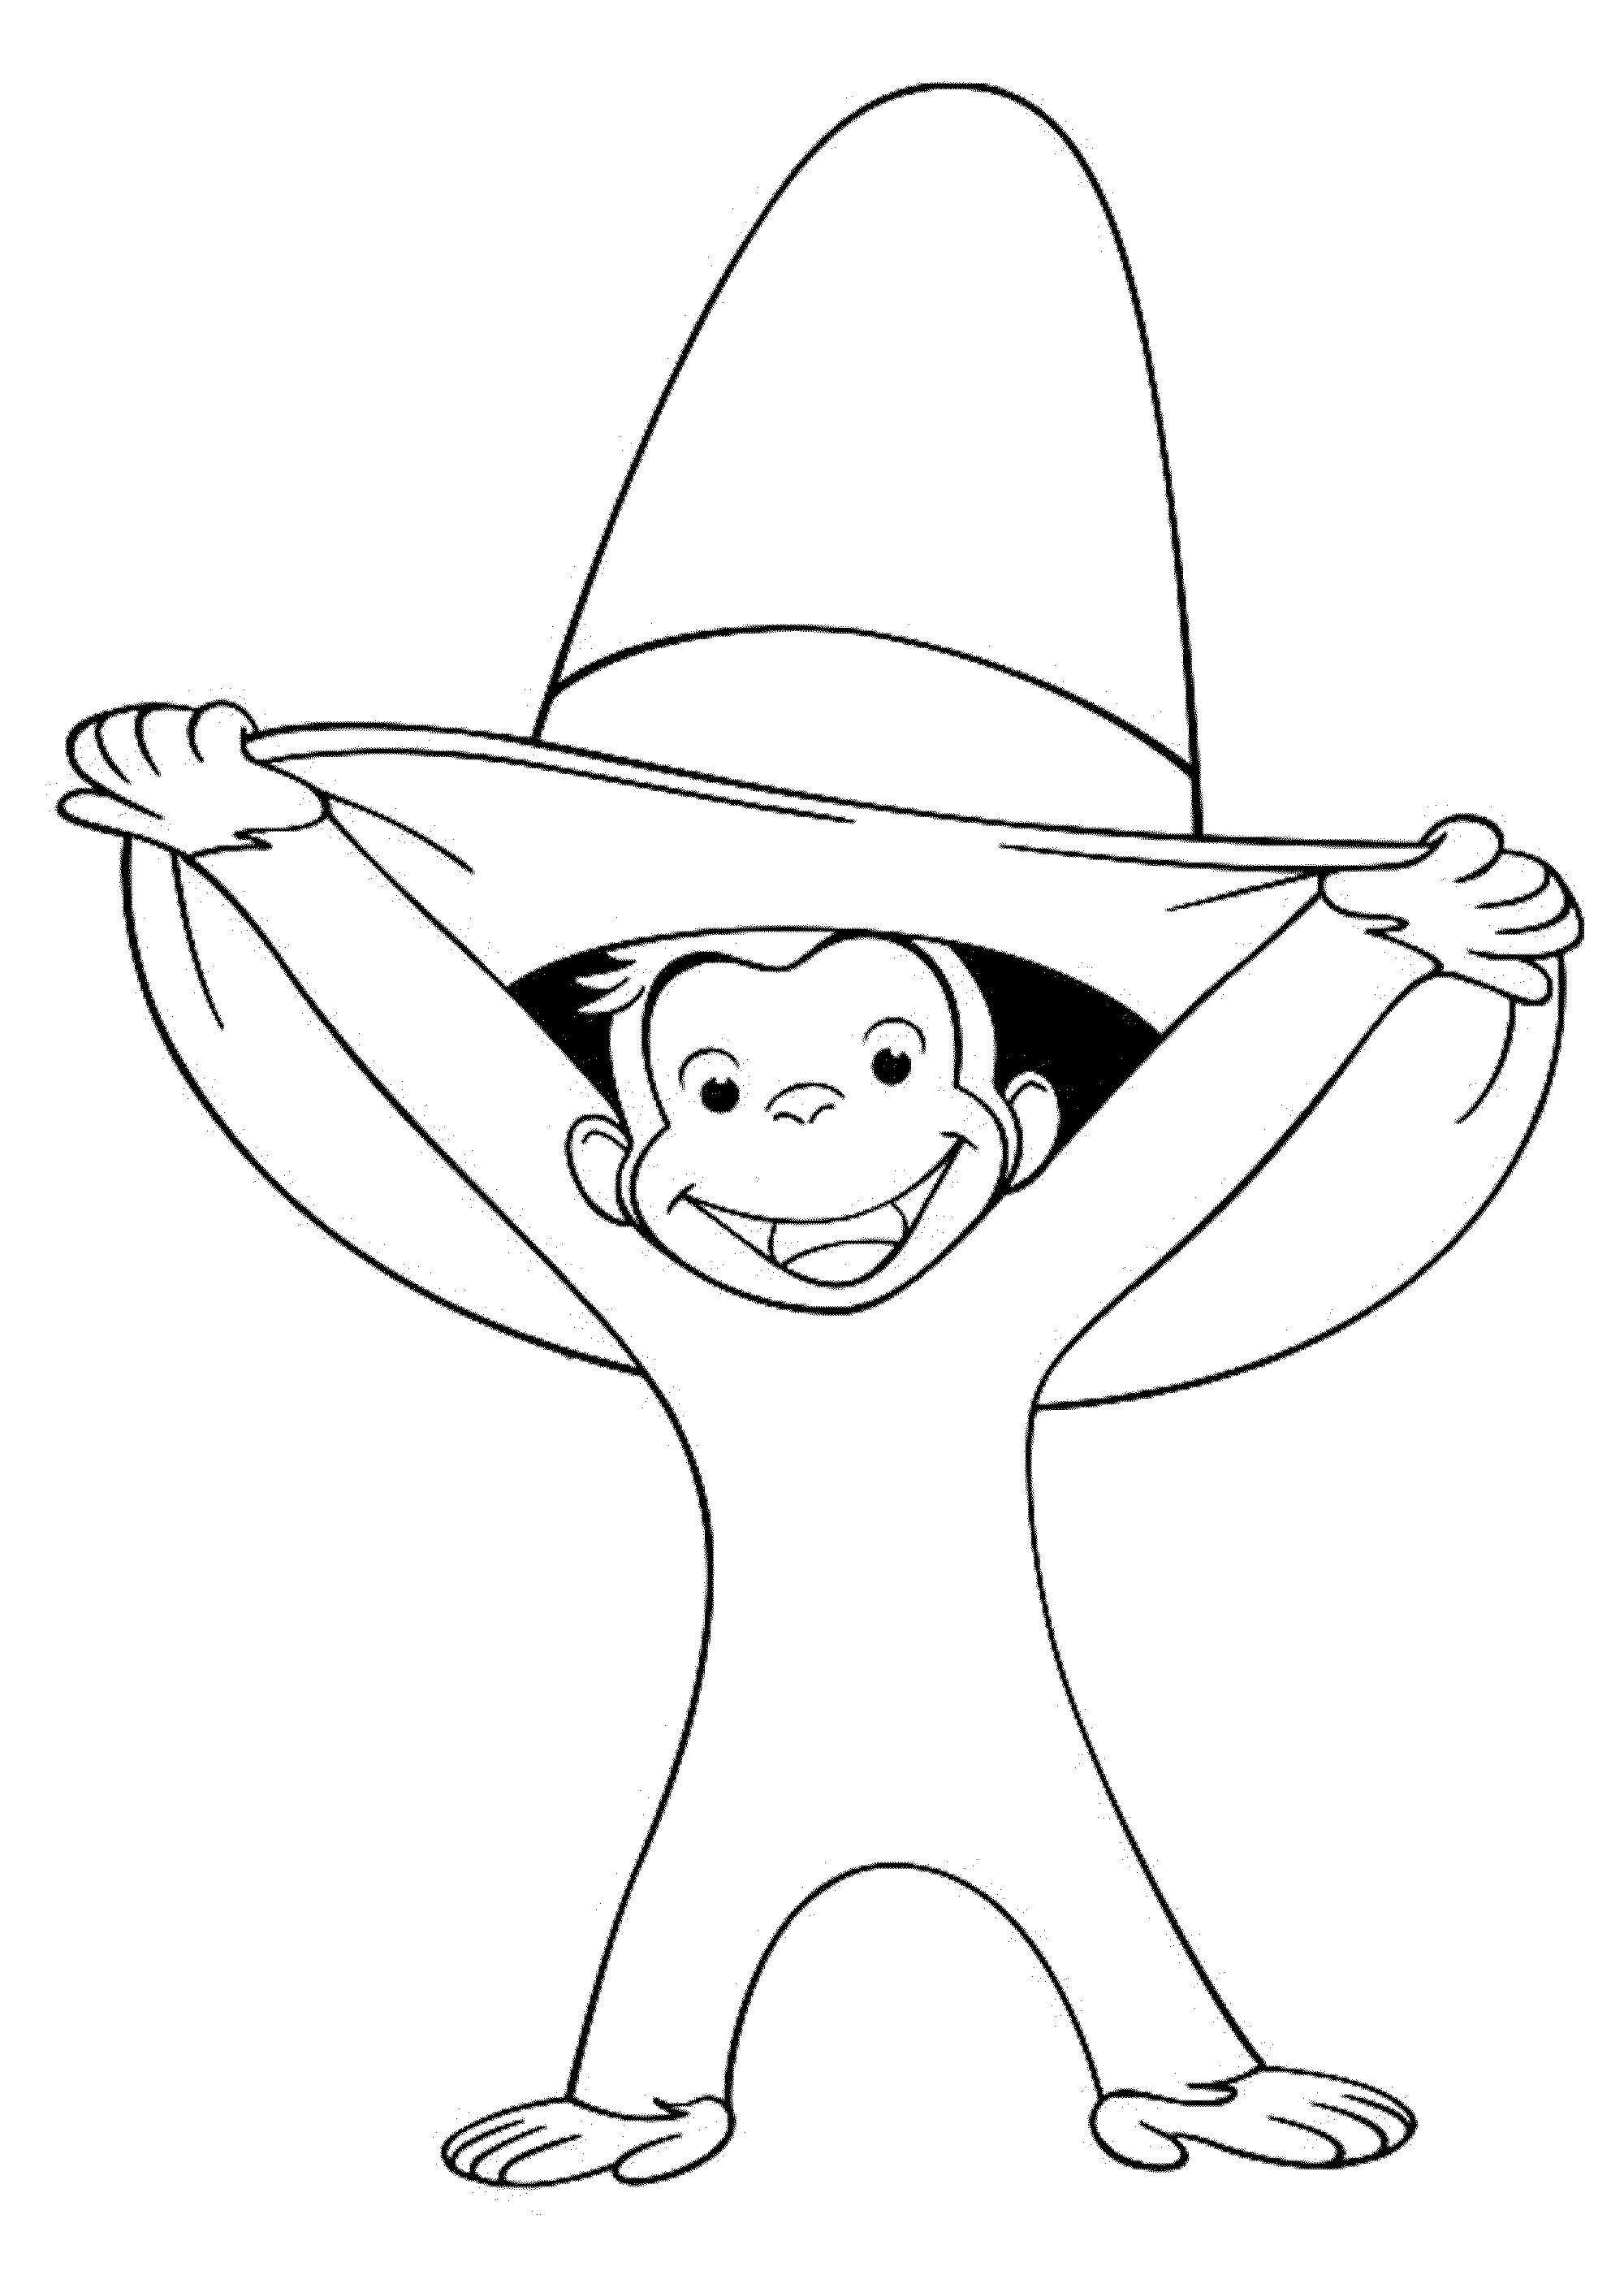 curious george coloring coloring pages for everyone curious george george coloring curious